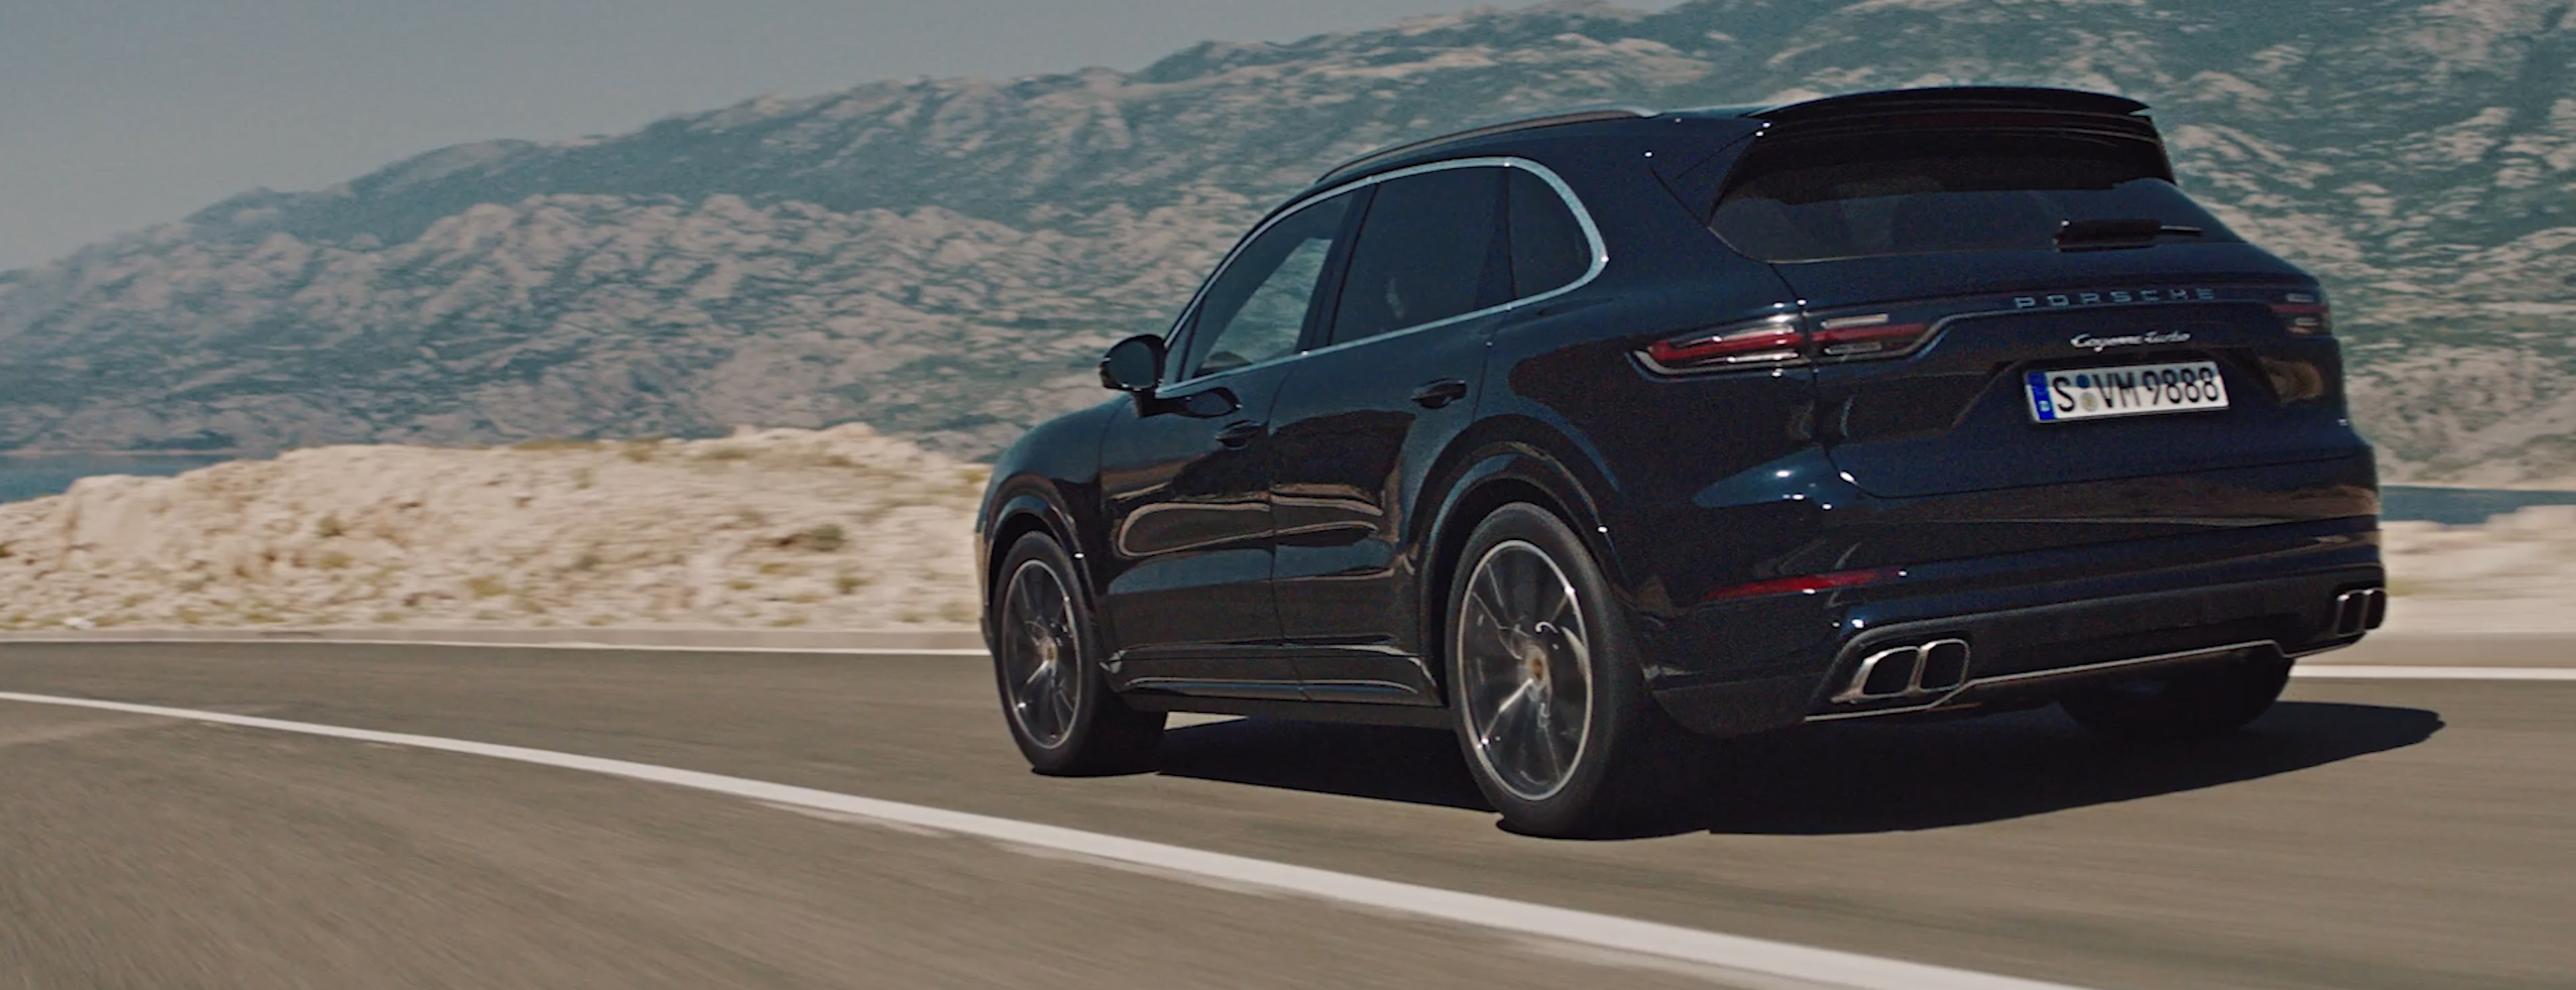 Image result for porsche cayenne